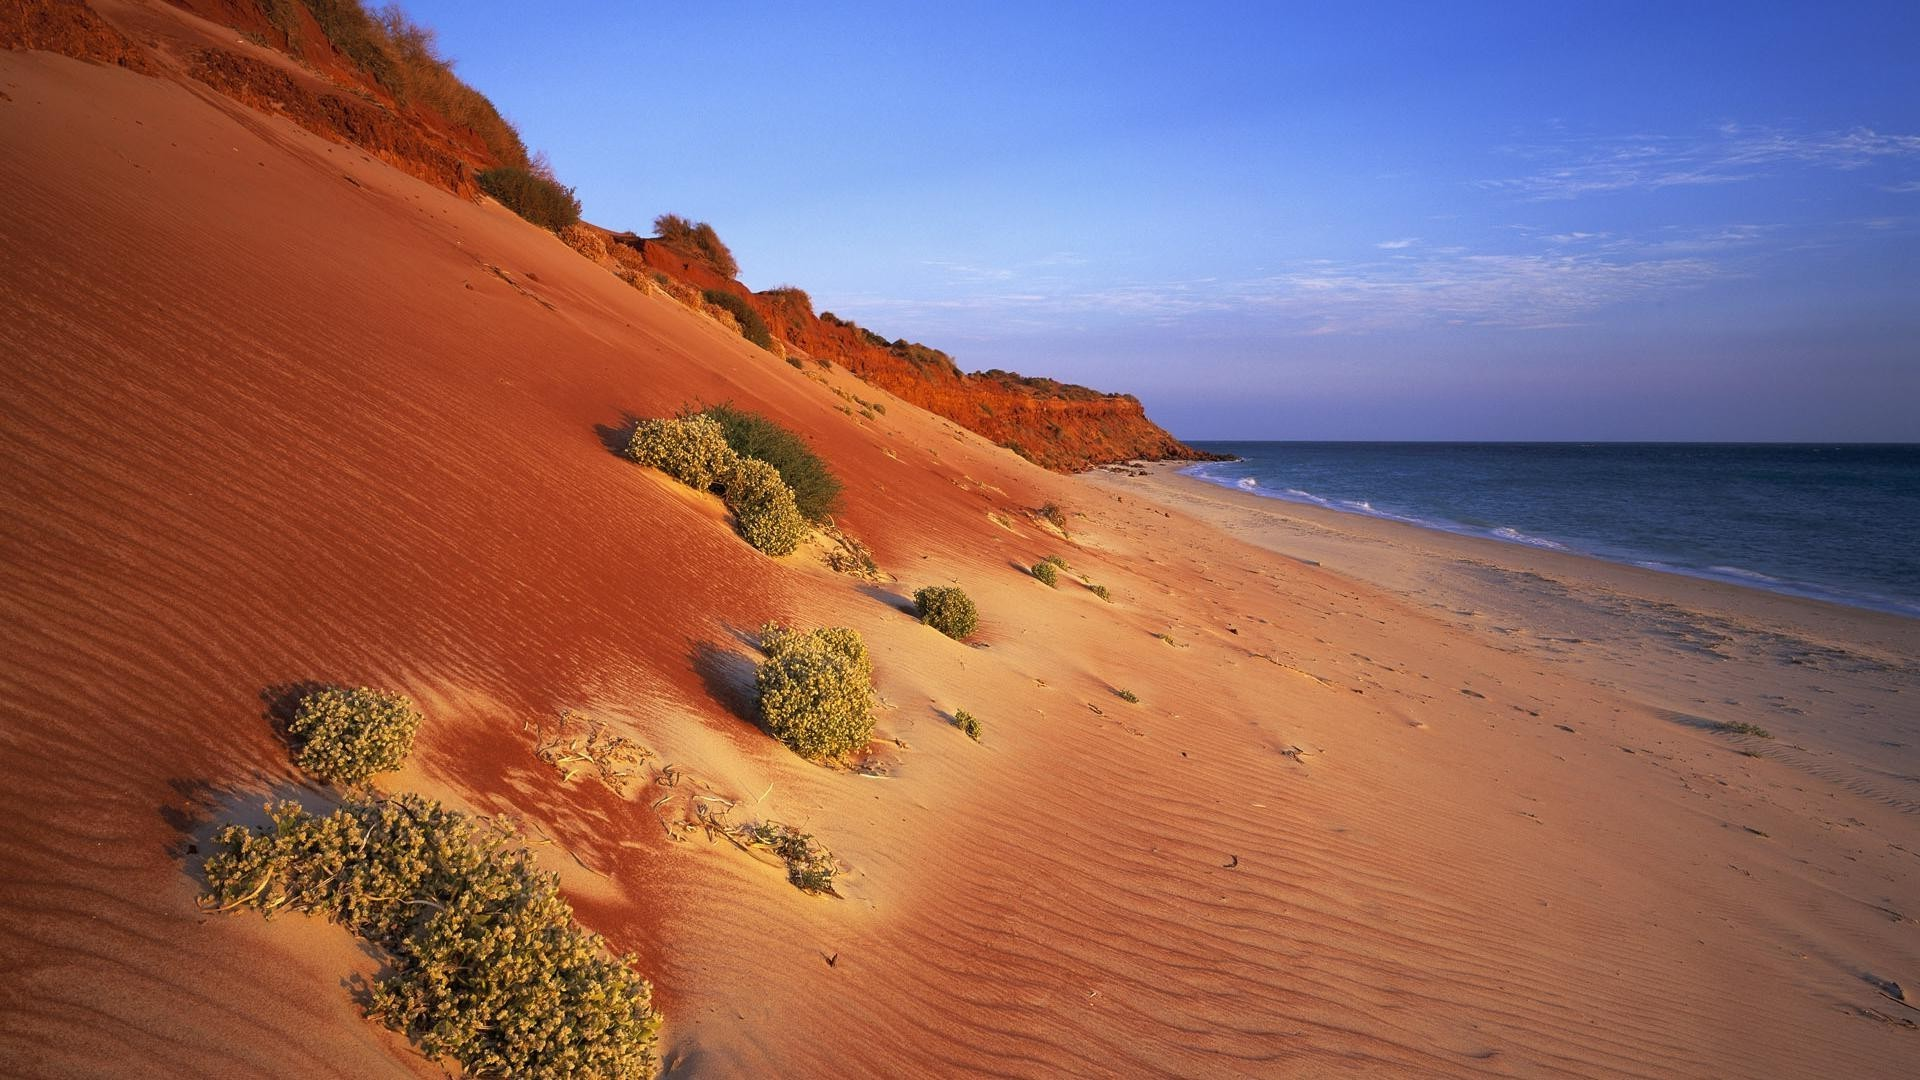 Sea, red Sands, greens